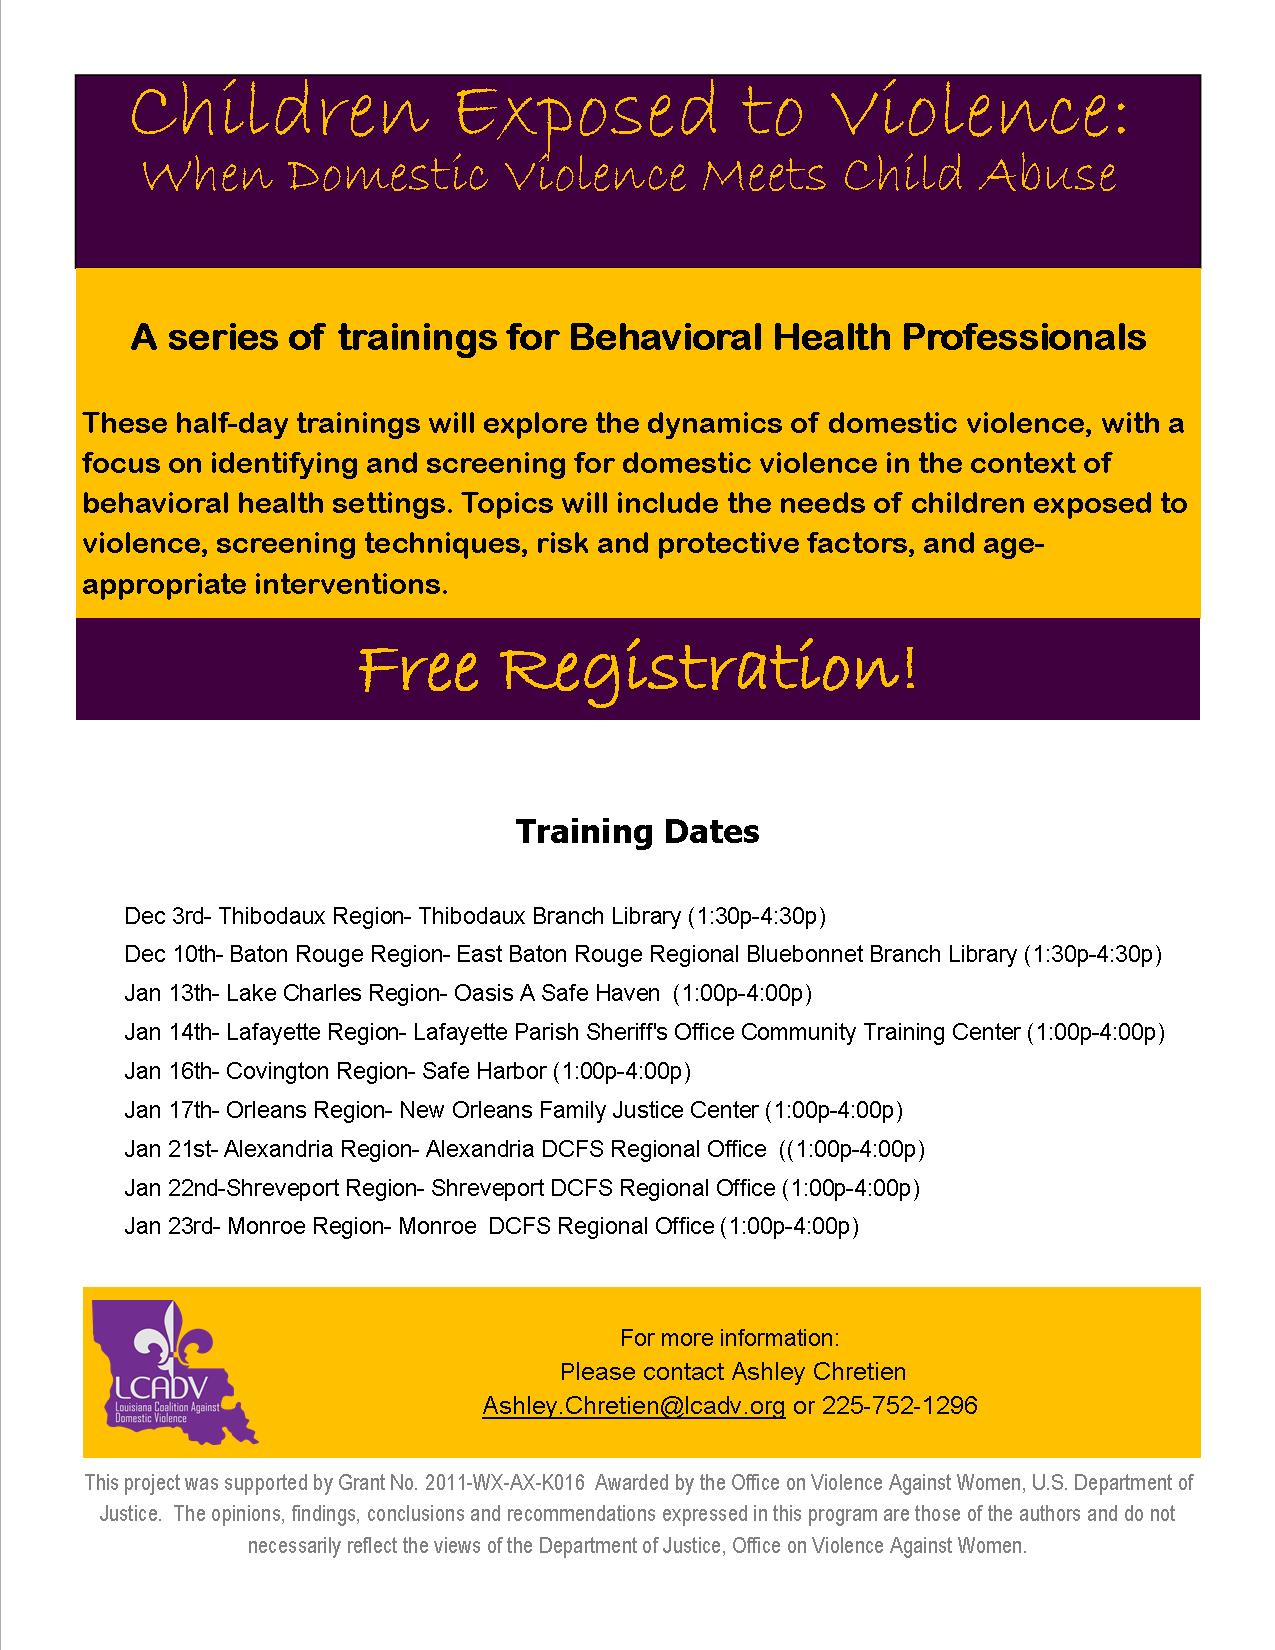 Behavioral Health-CEV flyer